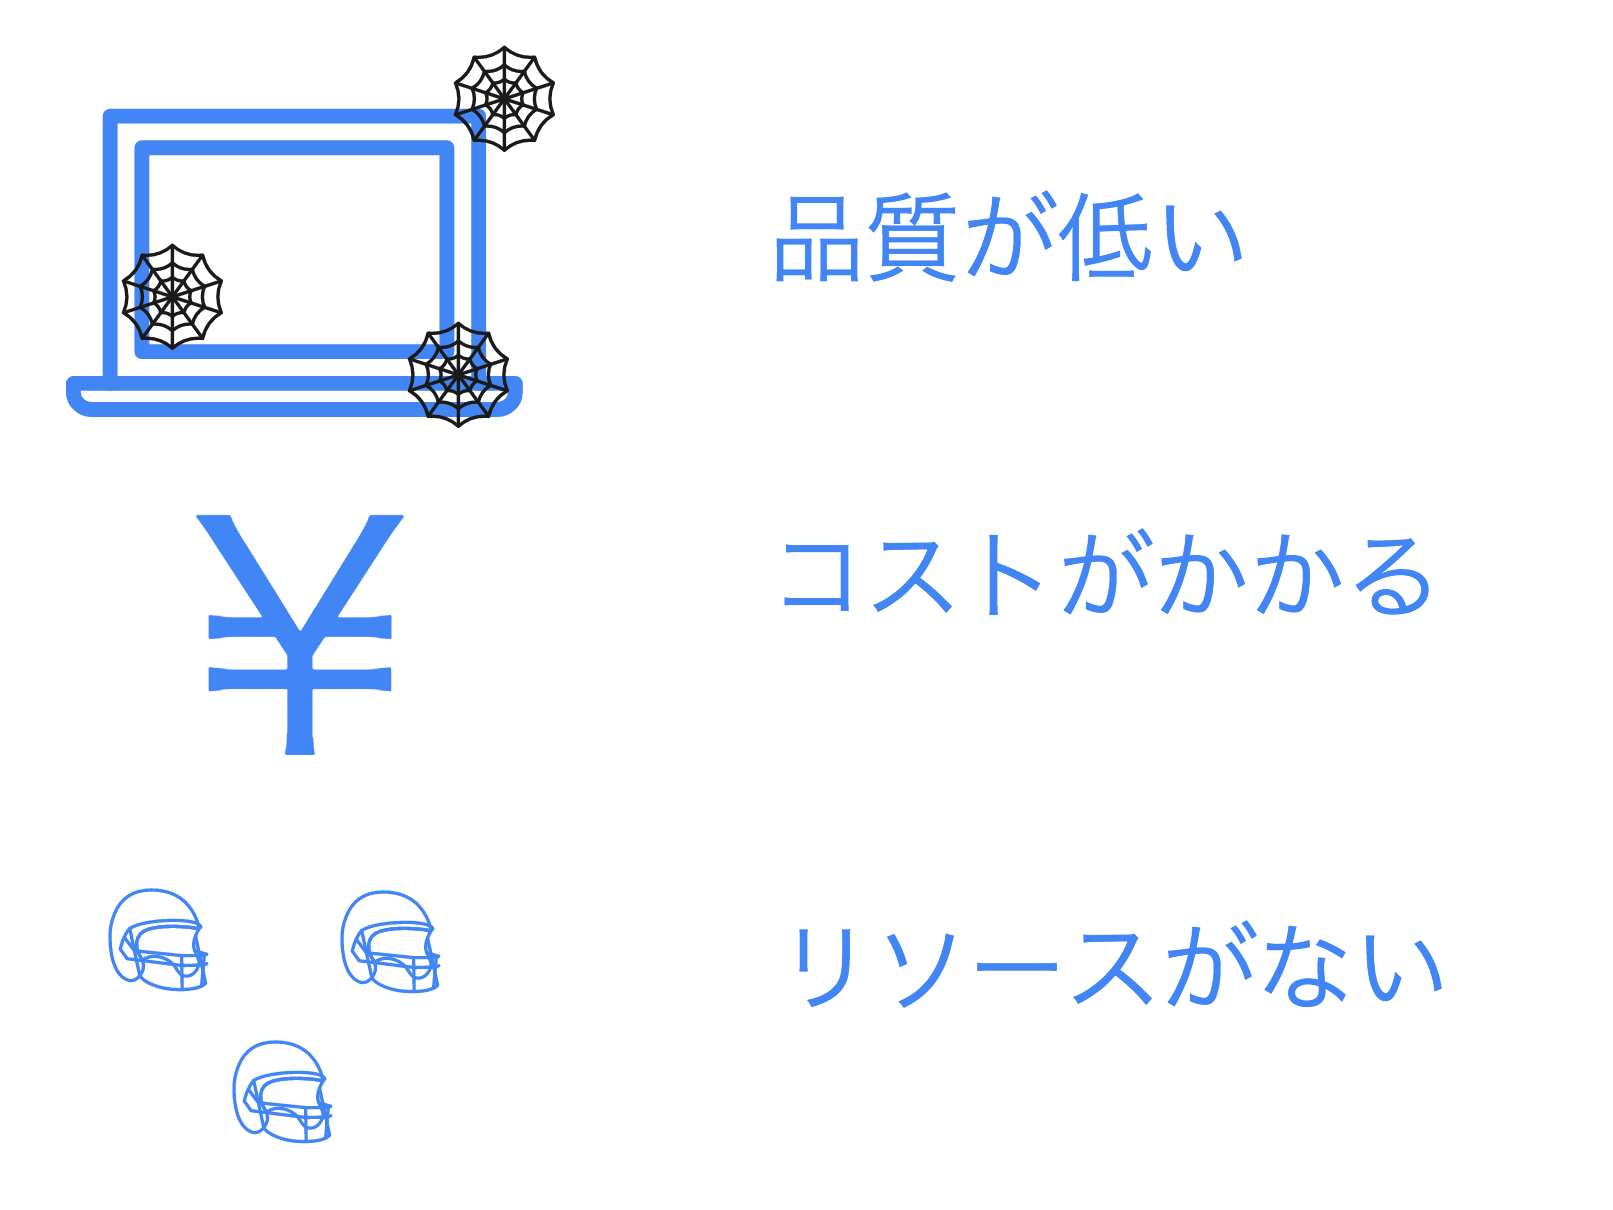 autodraw 2017_11_19 11_12_53.png